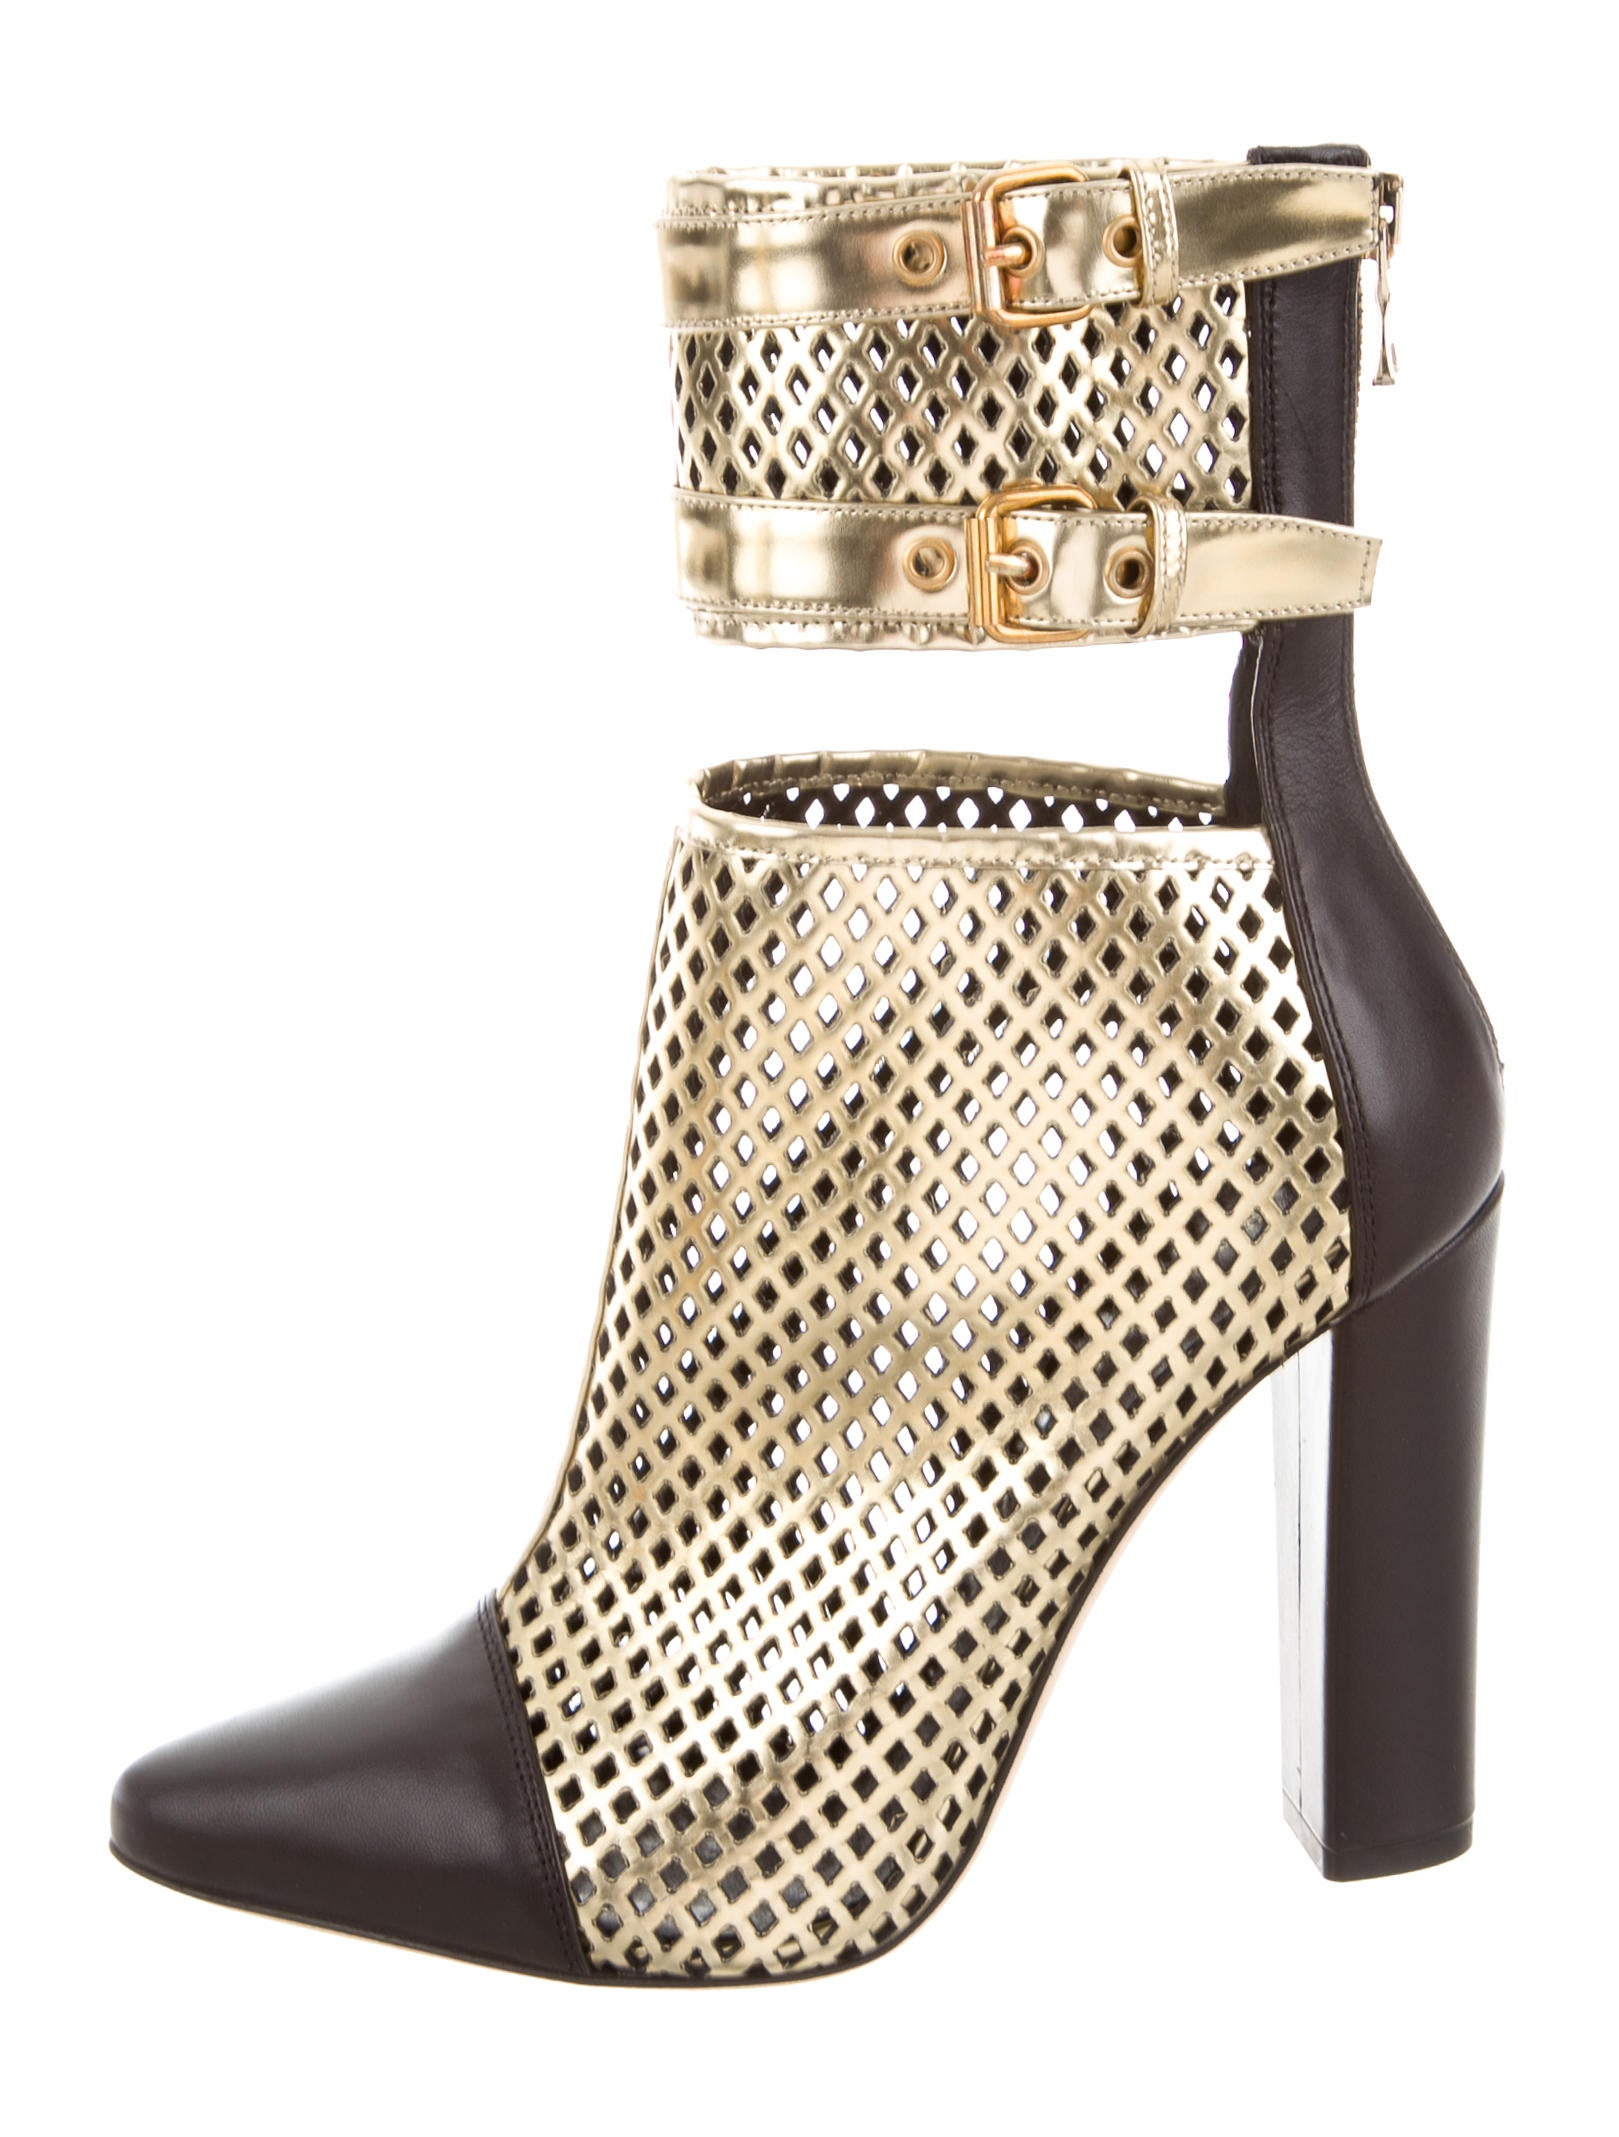 Balmain Perforated Blaow Booties w/ Tags outlet fake PAlMZlABSQ